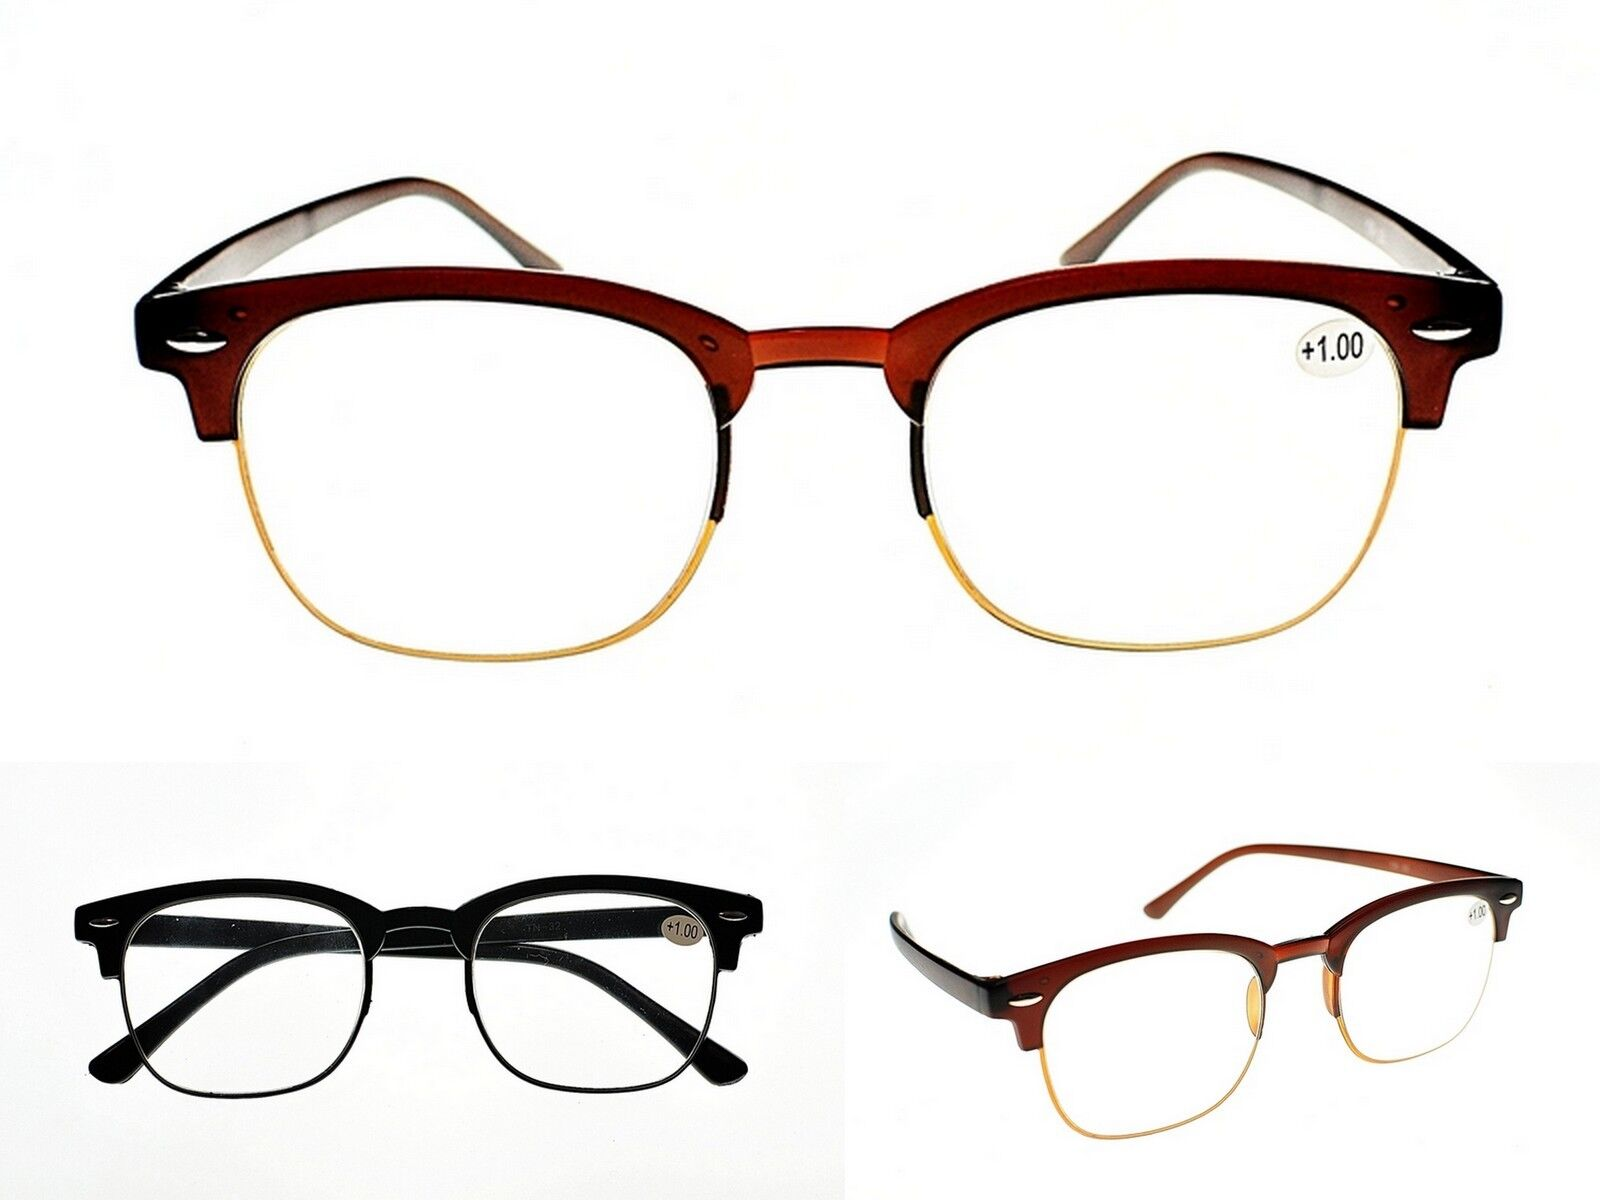 9f35a0fe0f43c Details about Bendable Clubmaster TR90 Fashion Unisex Flexible Reading  Glasses 2 Colours TN32